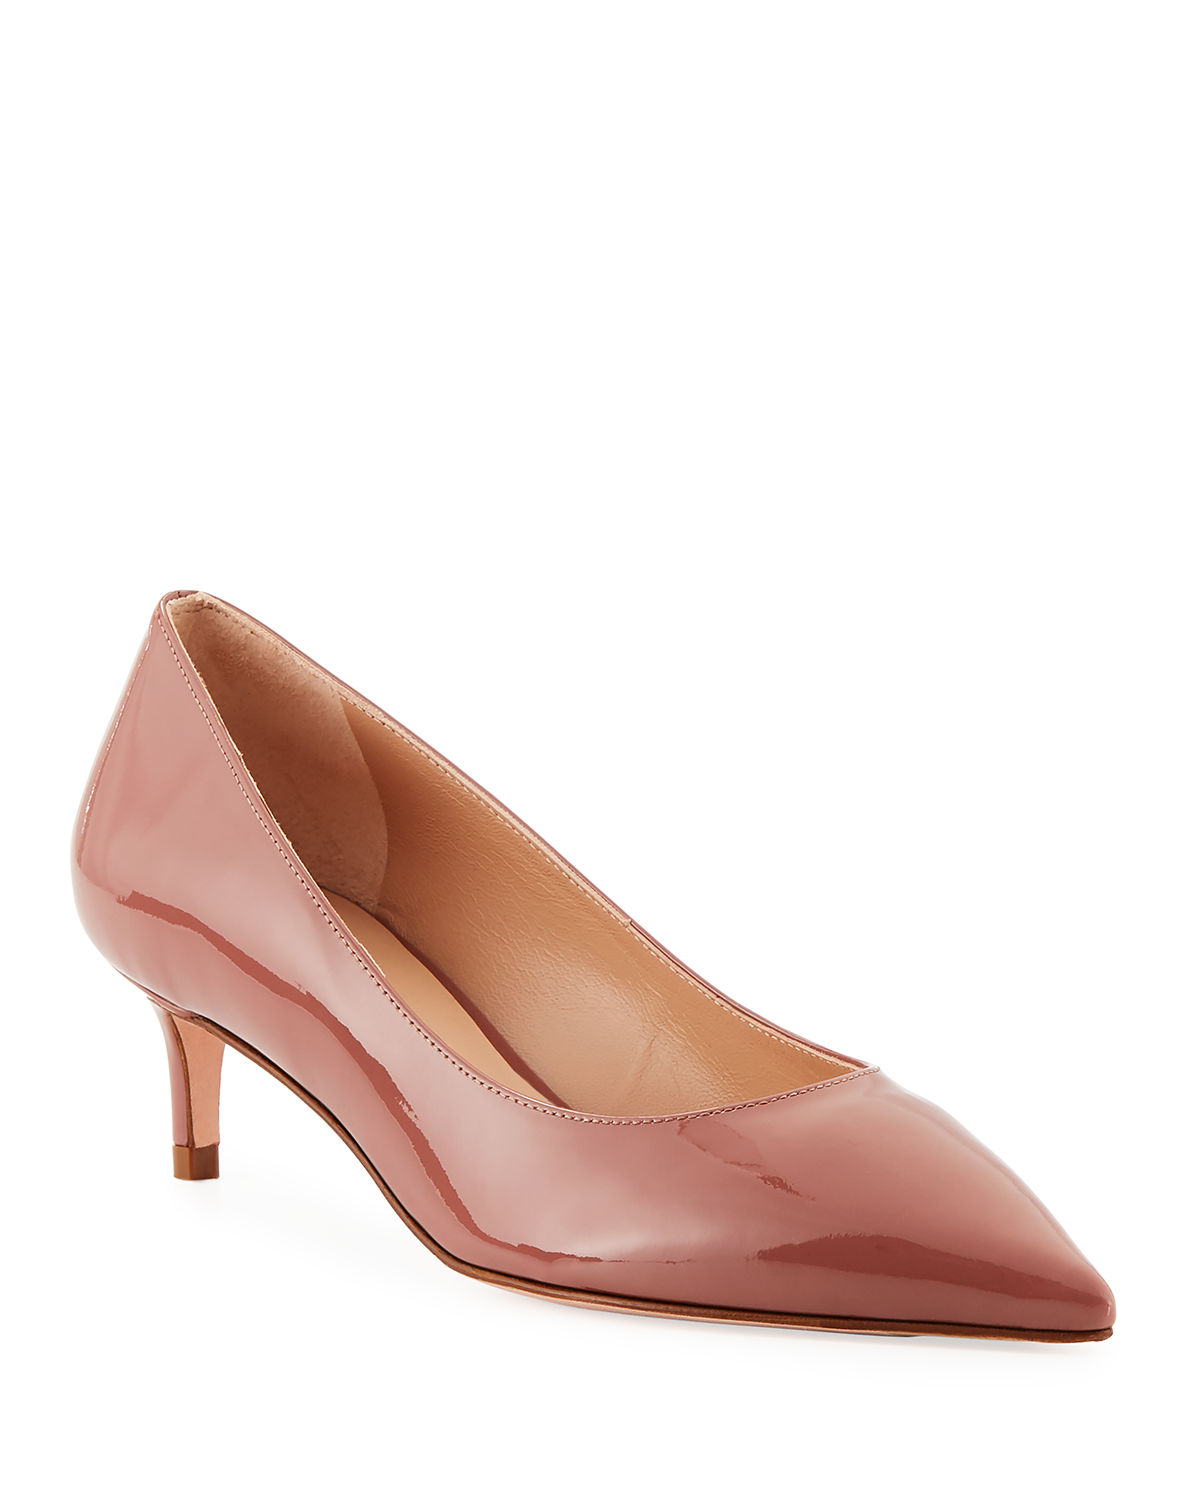 Leigh 45mm Patent Leather Pumps